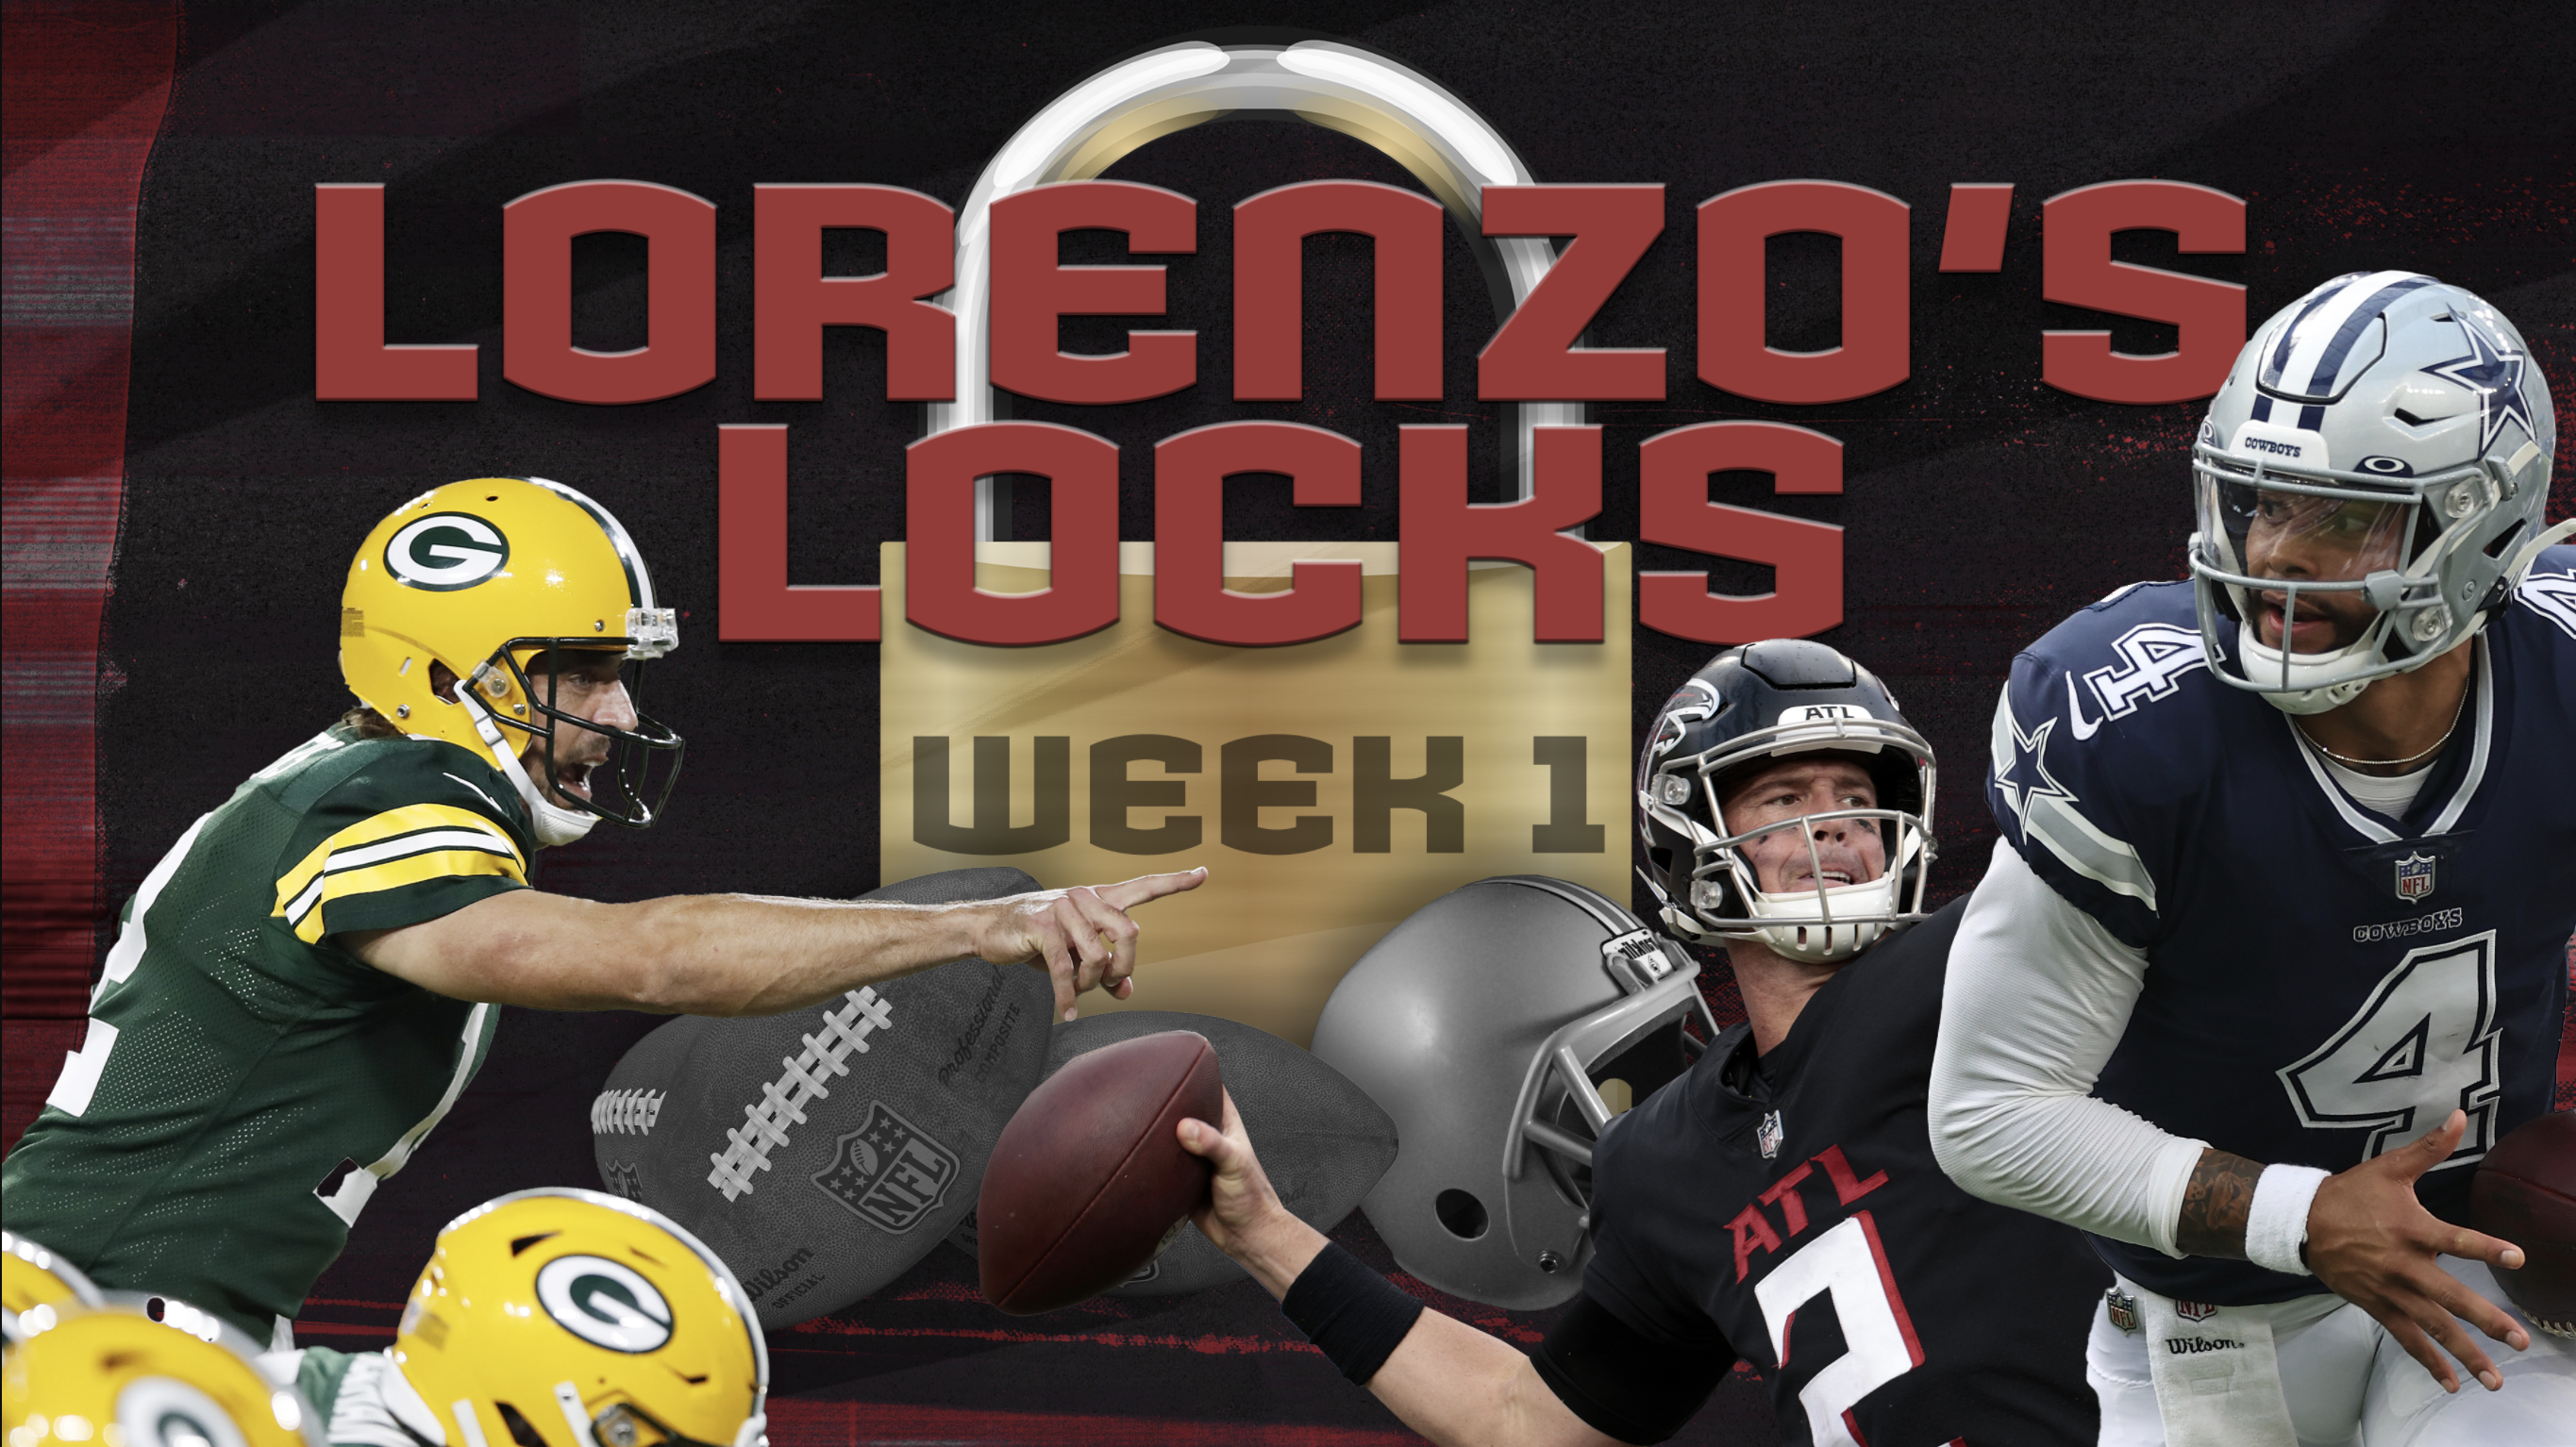 NFL Week 3 Predictions: The Packers are a lock | Lorenzo's Locks